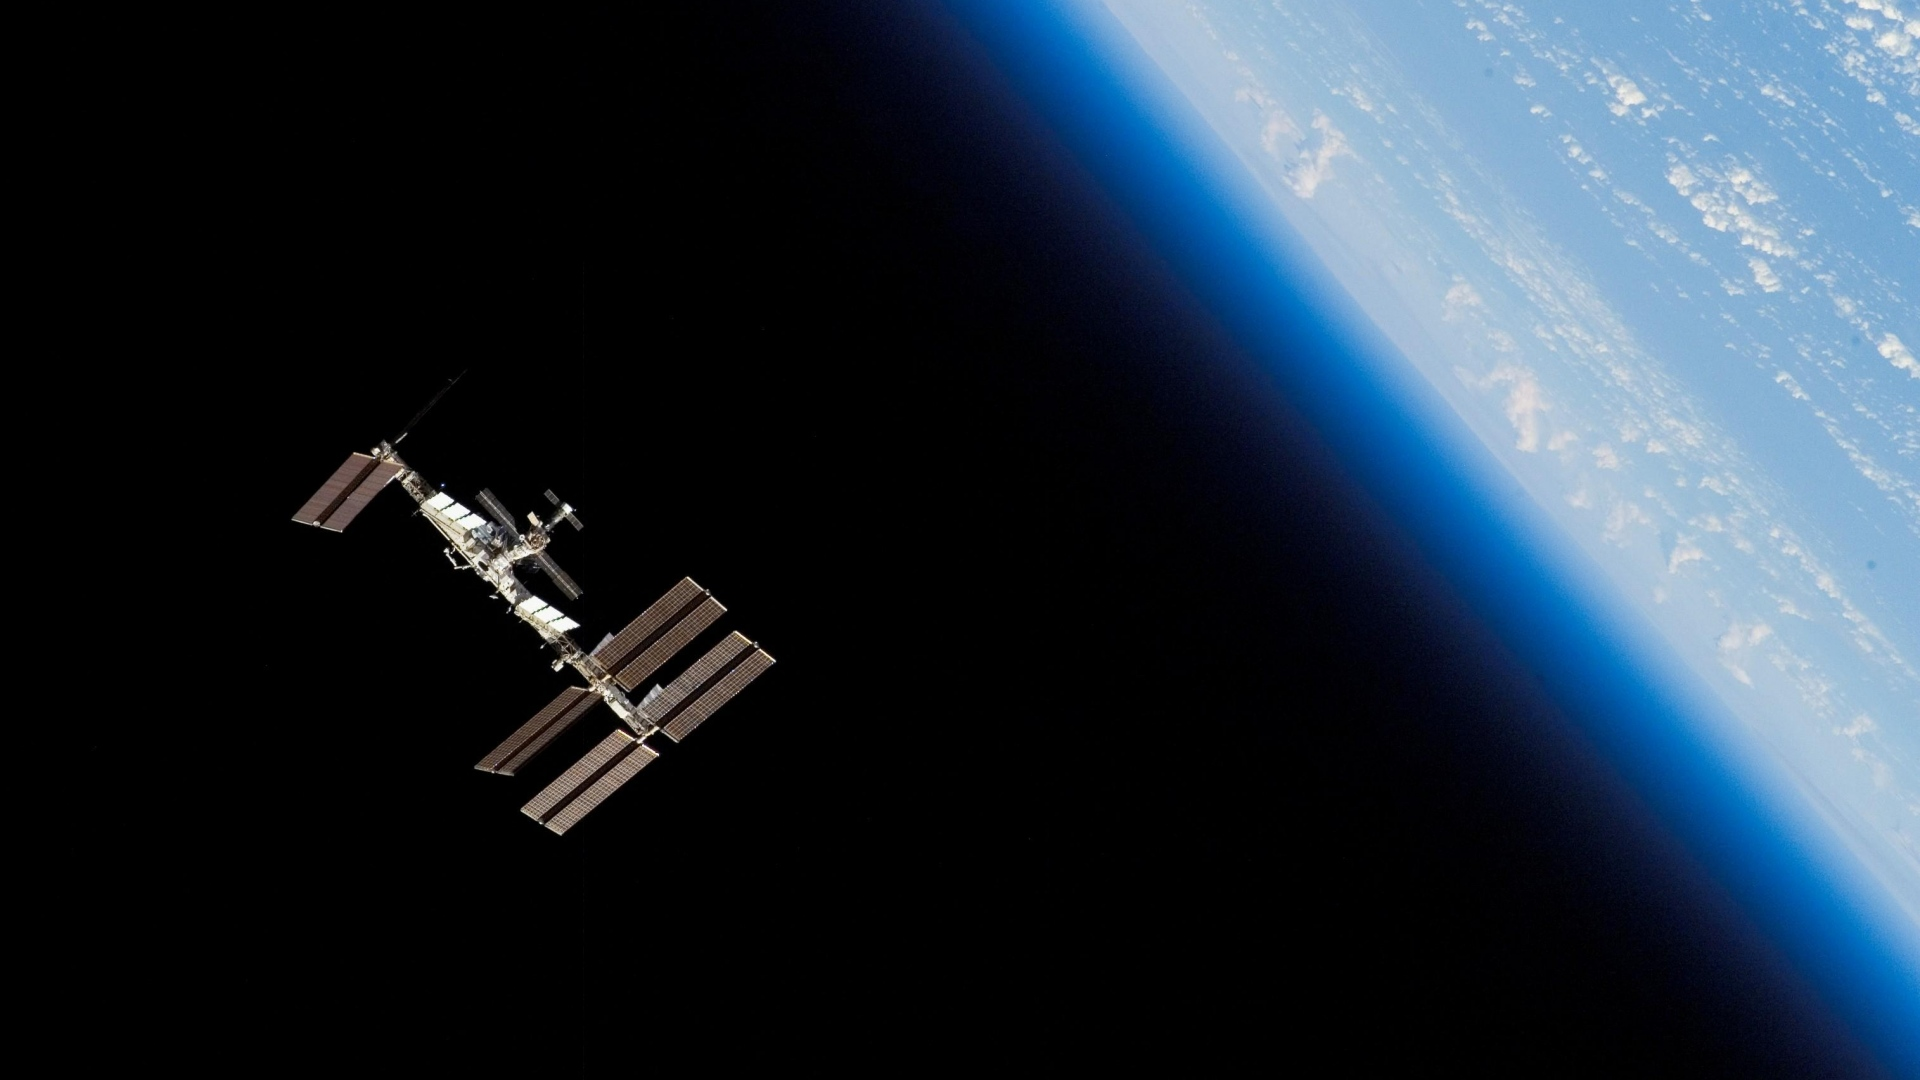 Iss Wallpapers Hd: WallpaperSafari